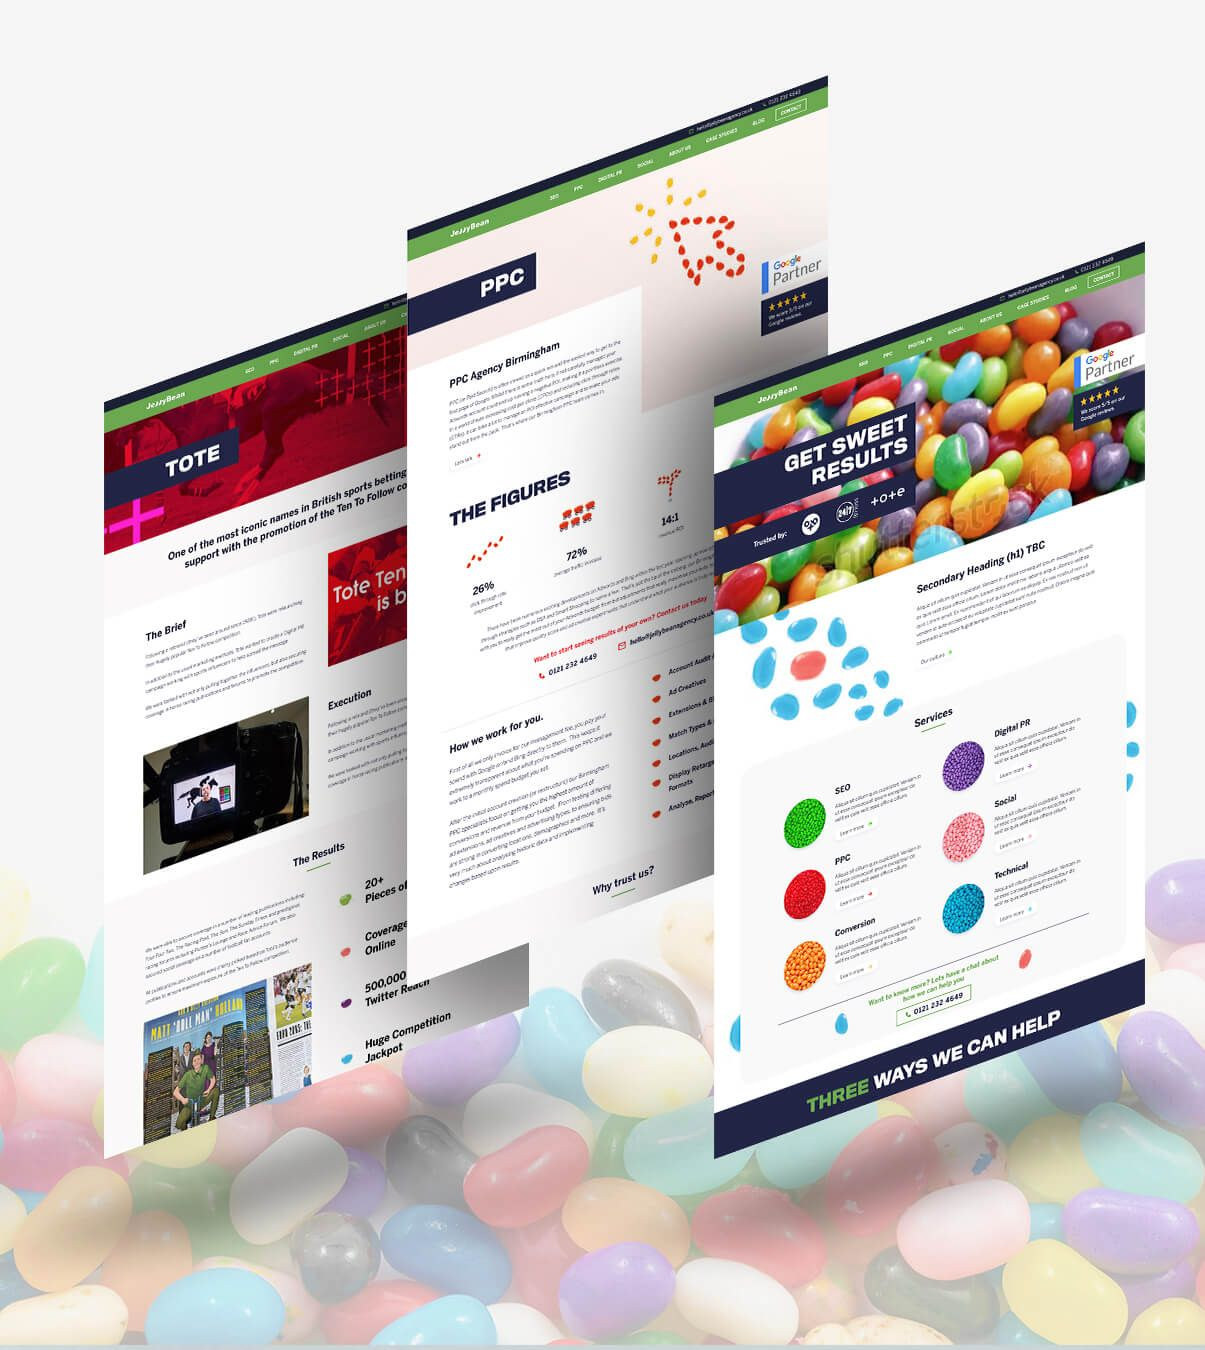 JellyBean Web Design